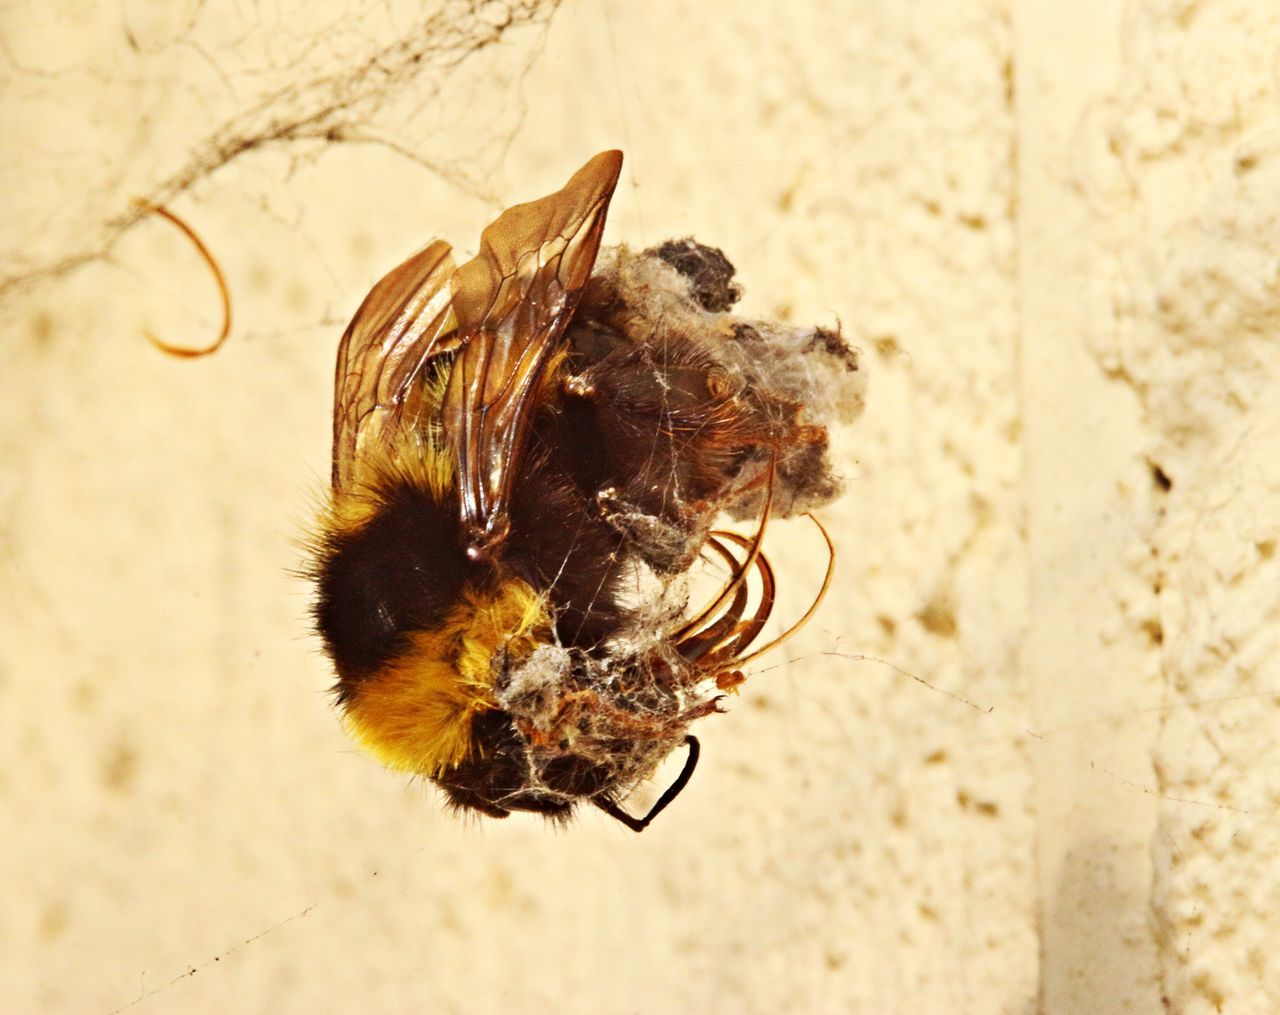 Animal Wildlife Bee Close-up Dead Bee Decaying FirstEyeEmPic Insect Nature Spider Kill Spider Web